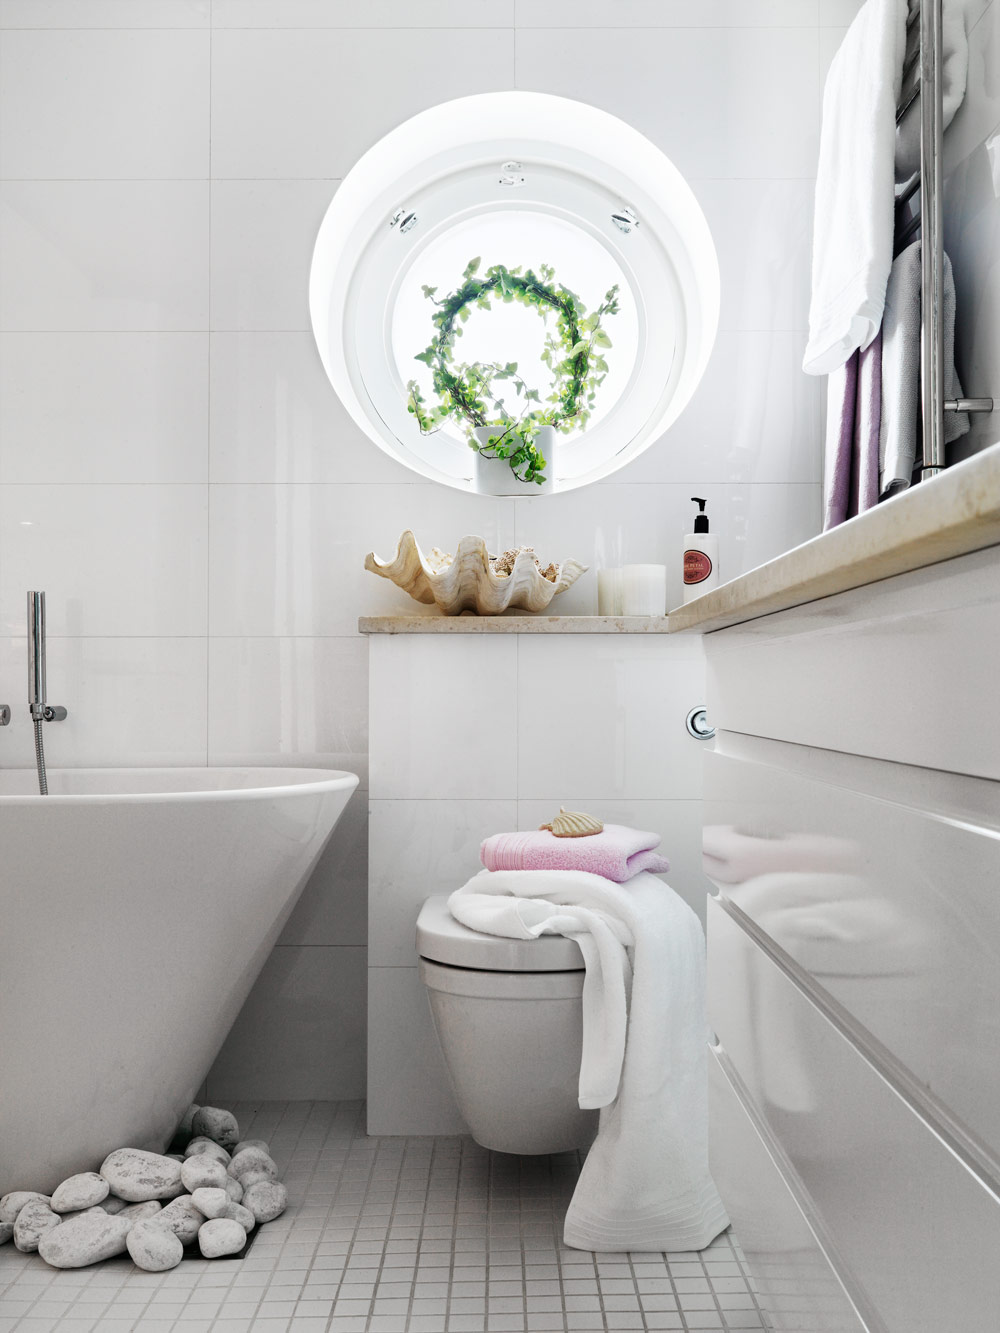 Stylish small bathroom with an unusual decor digsdigs for Bathroom styles and designs